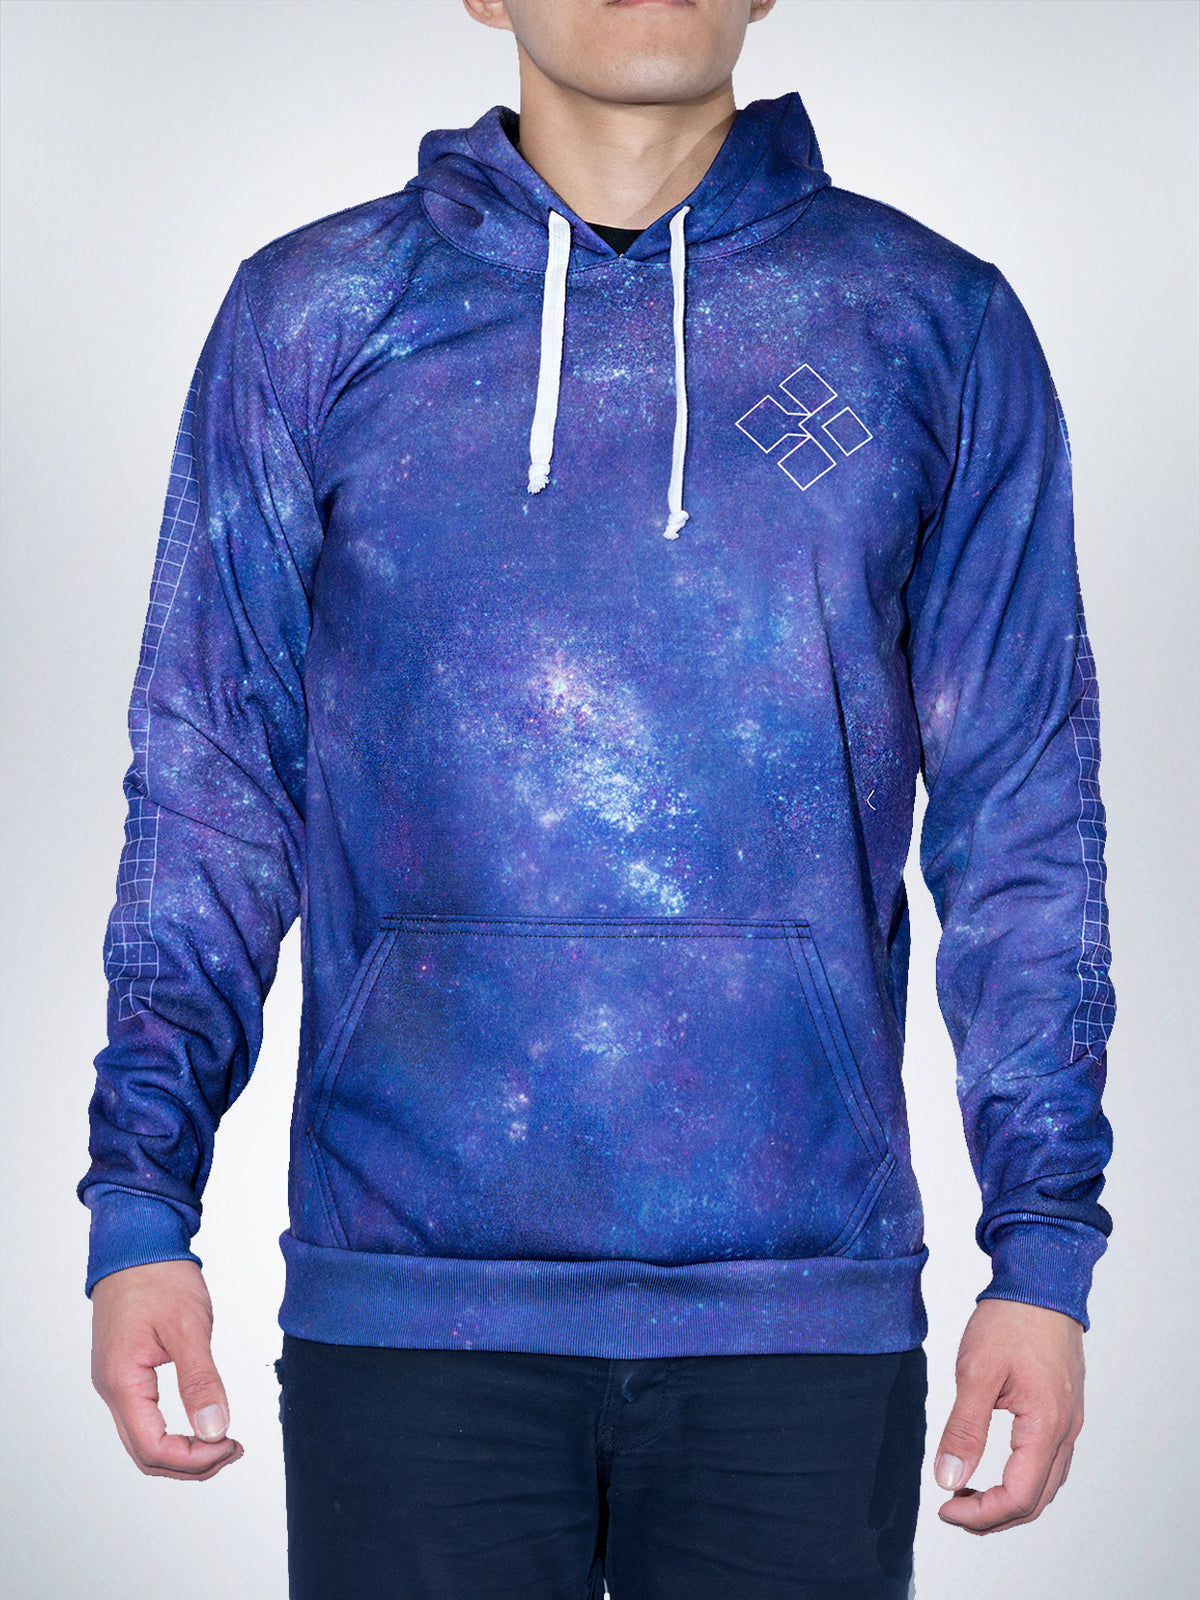 Worm hole Xclusive hoodies pullover sweater galaxy EDM TRIPPY universe wave